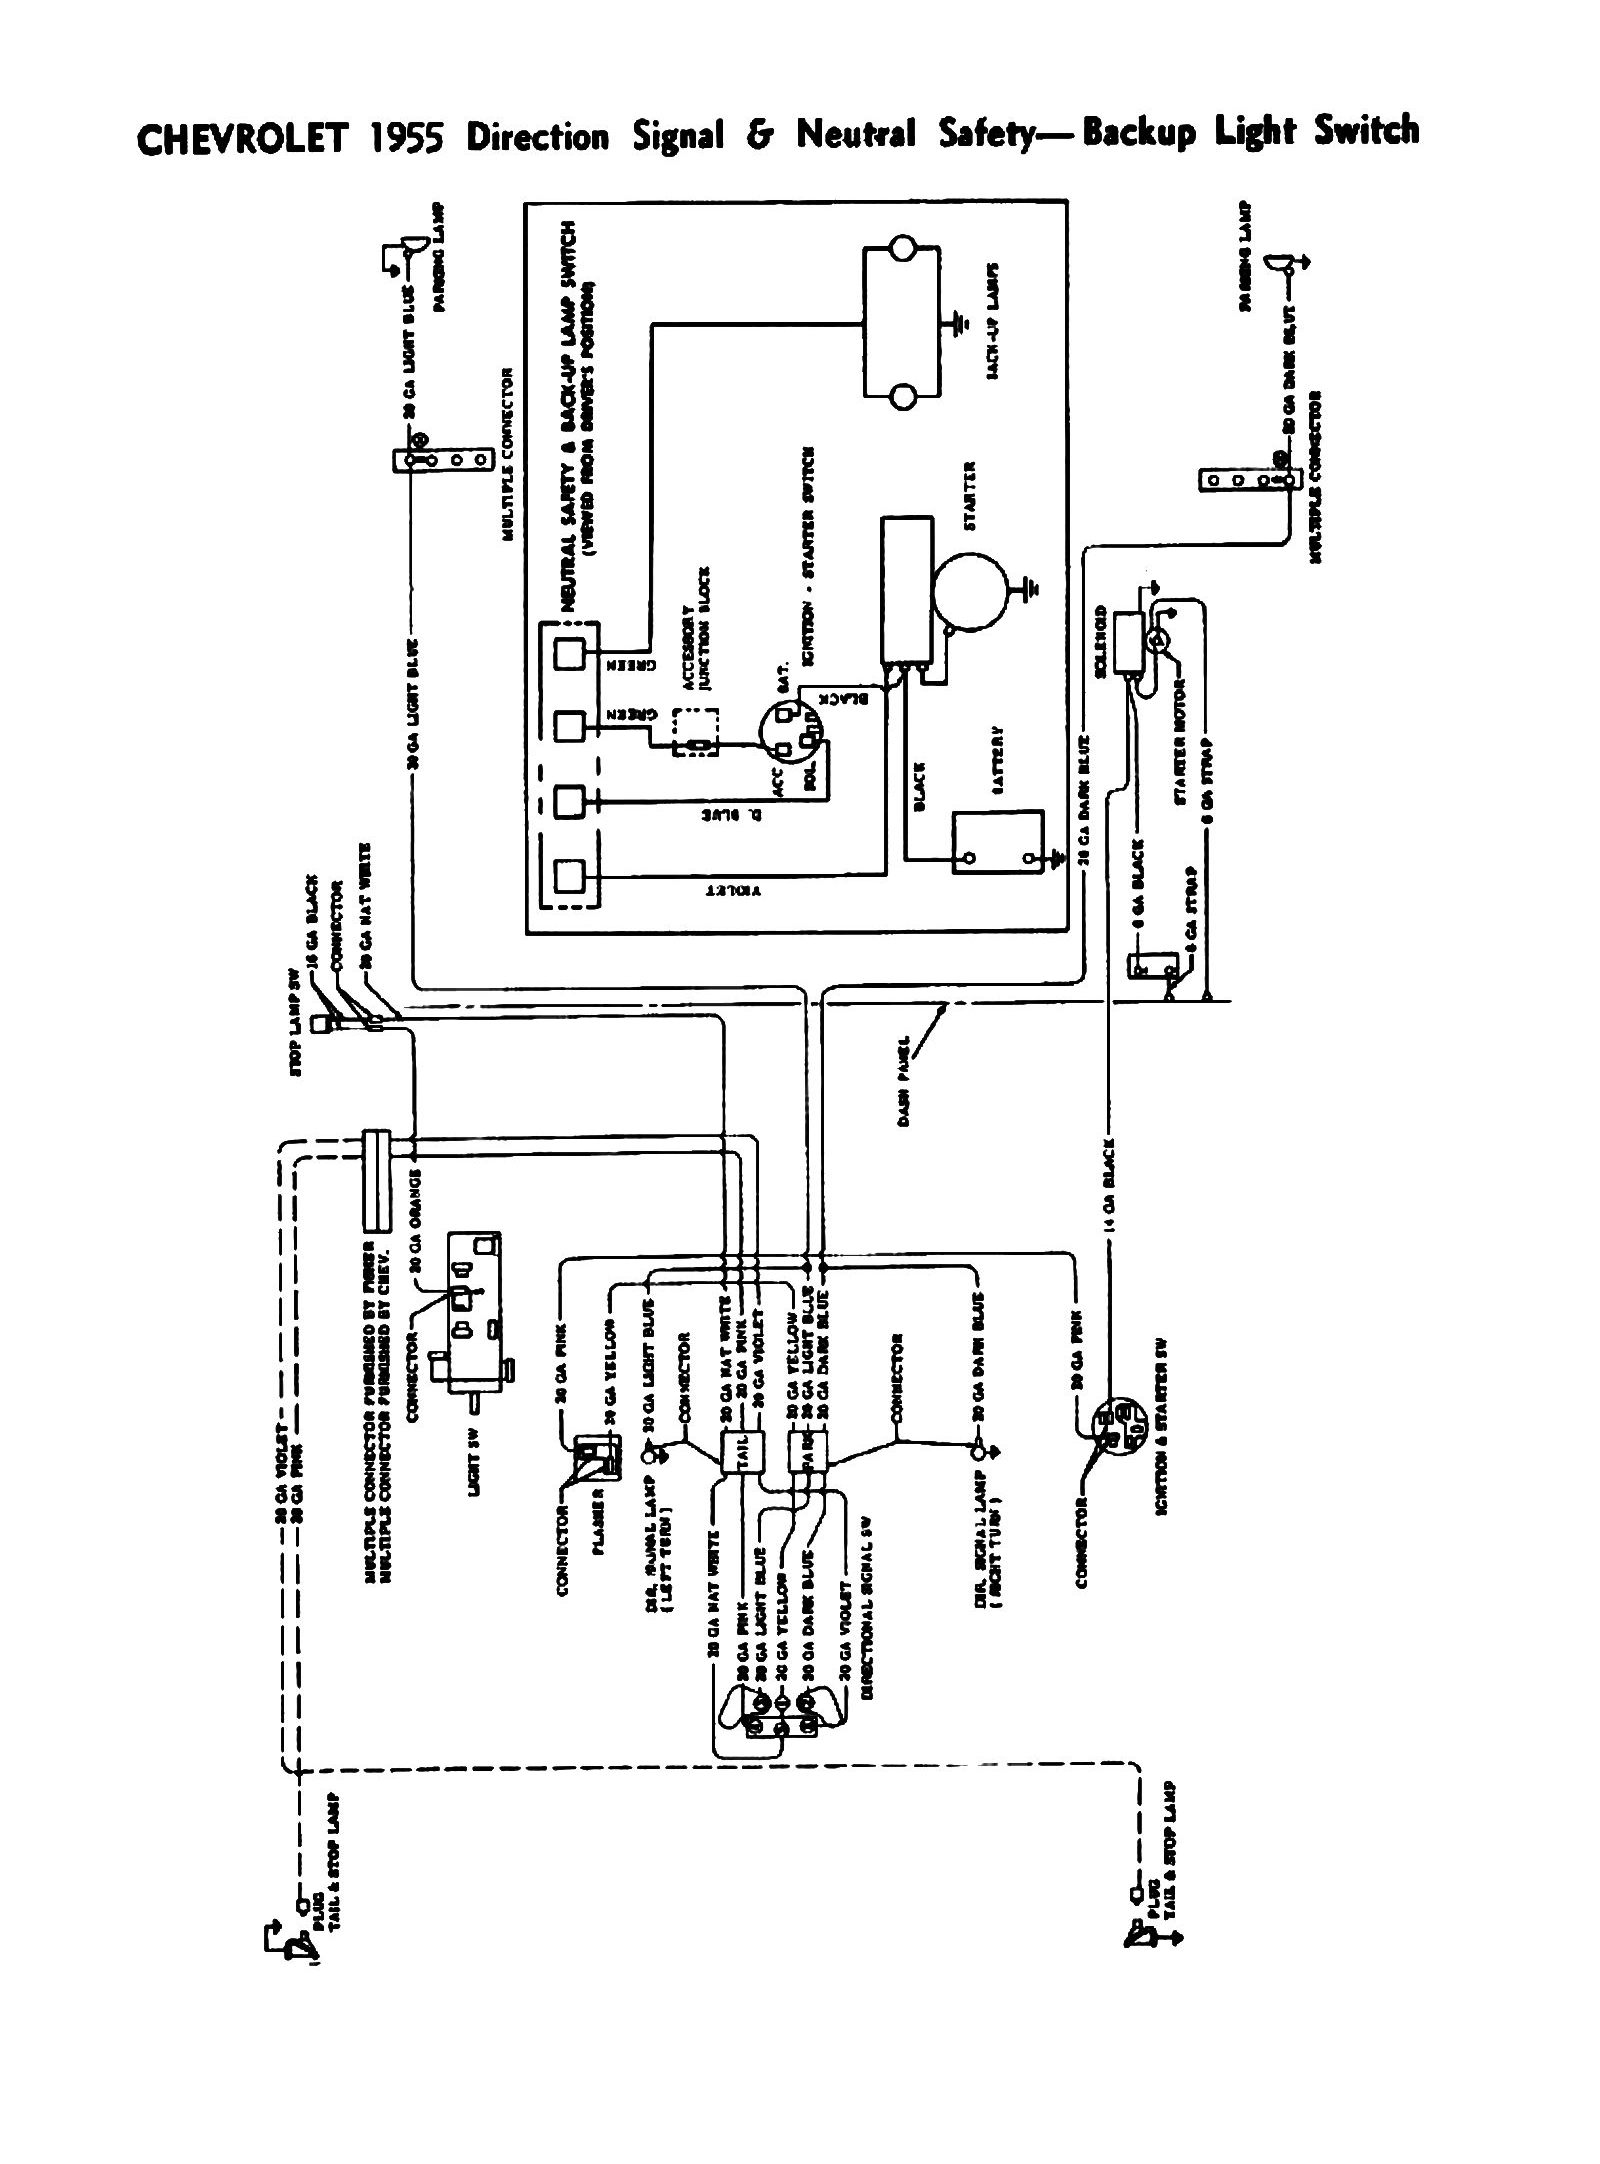 1957 Chevy Truck Wiring Diagram Rh Blaknwyt Co 1998 Oldsmobile 88 Fuse:  1998 Oldsmobile Intrigue